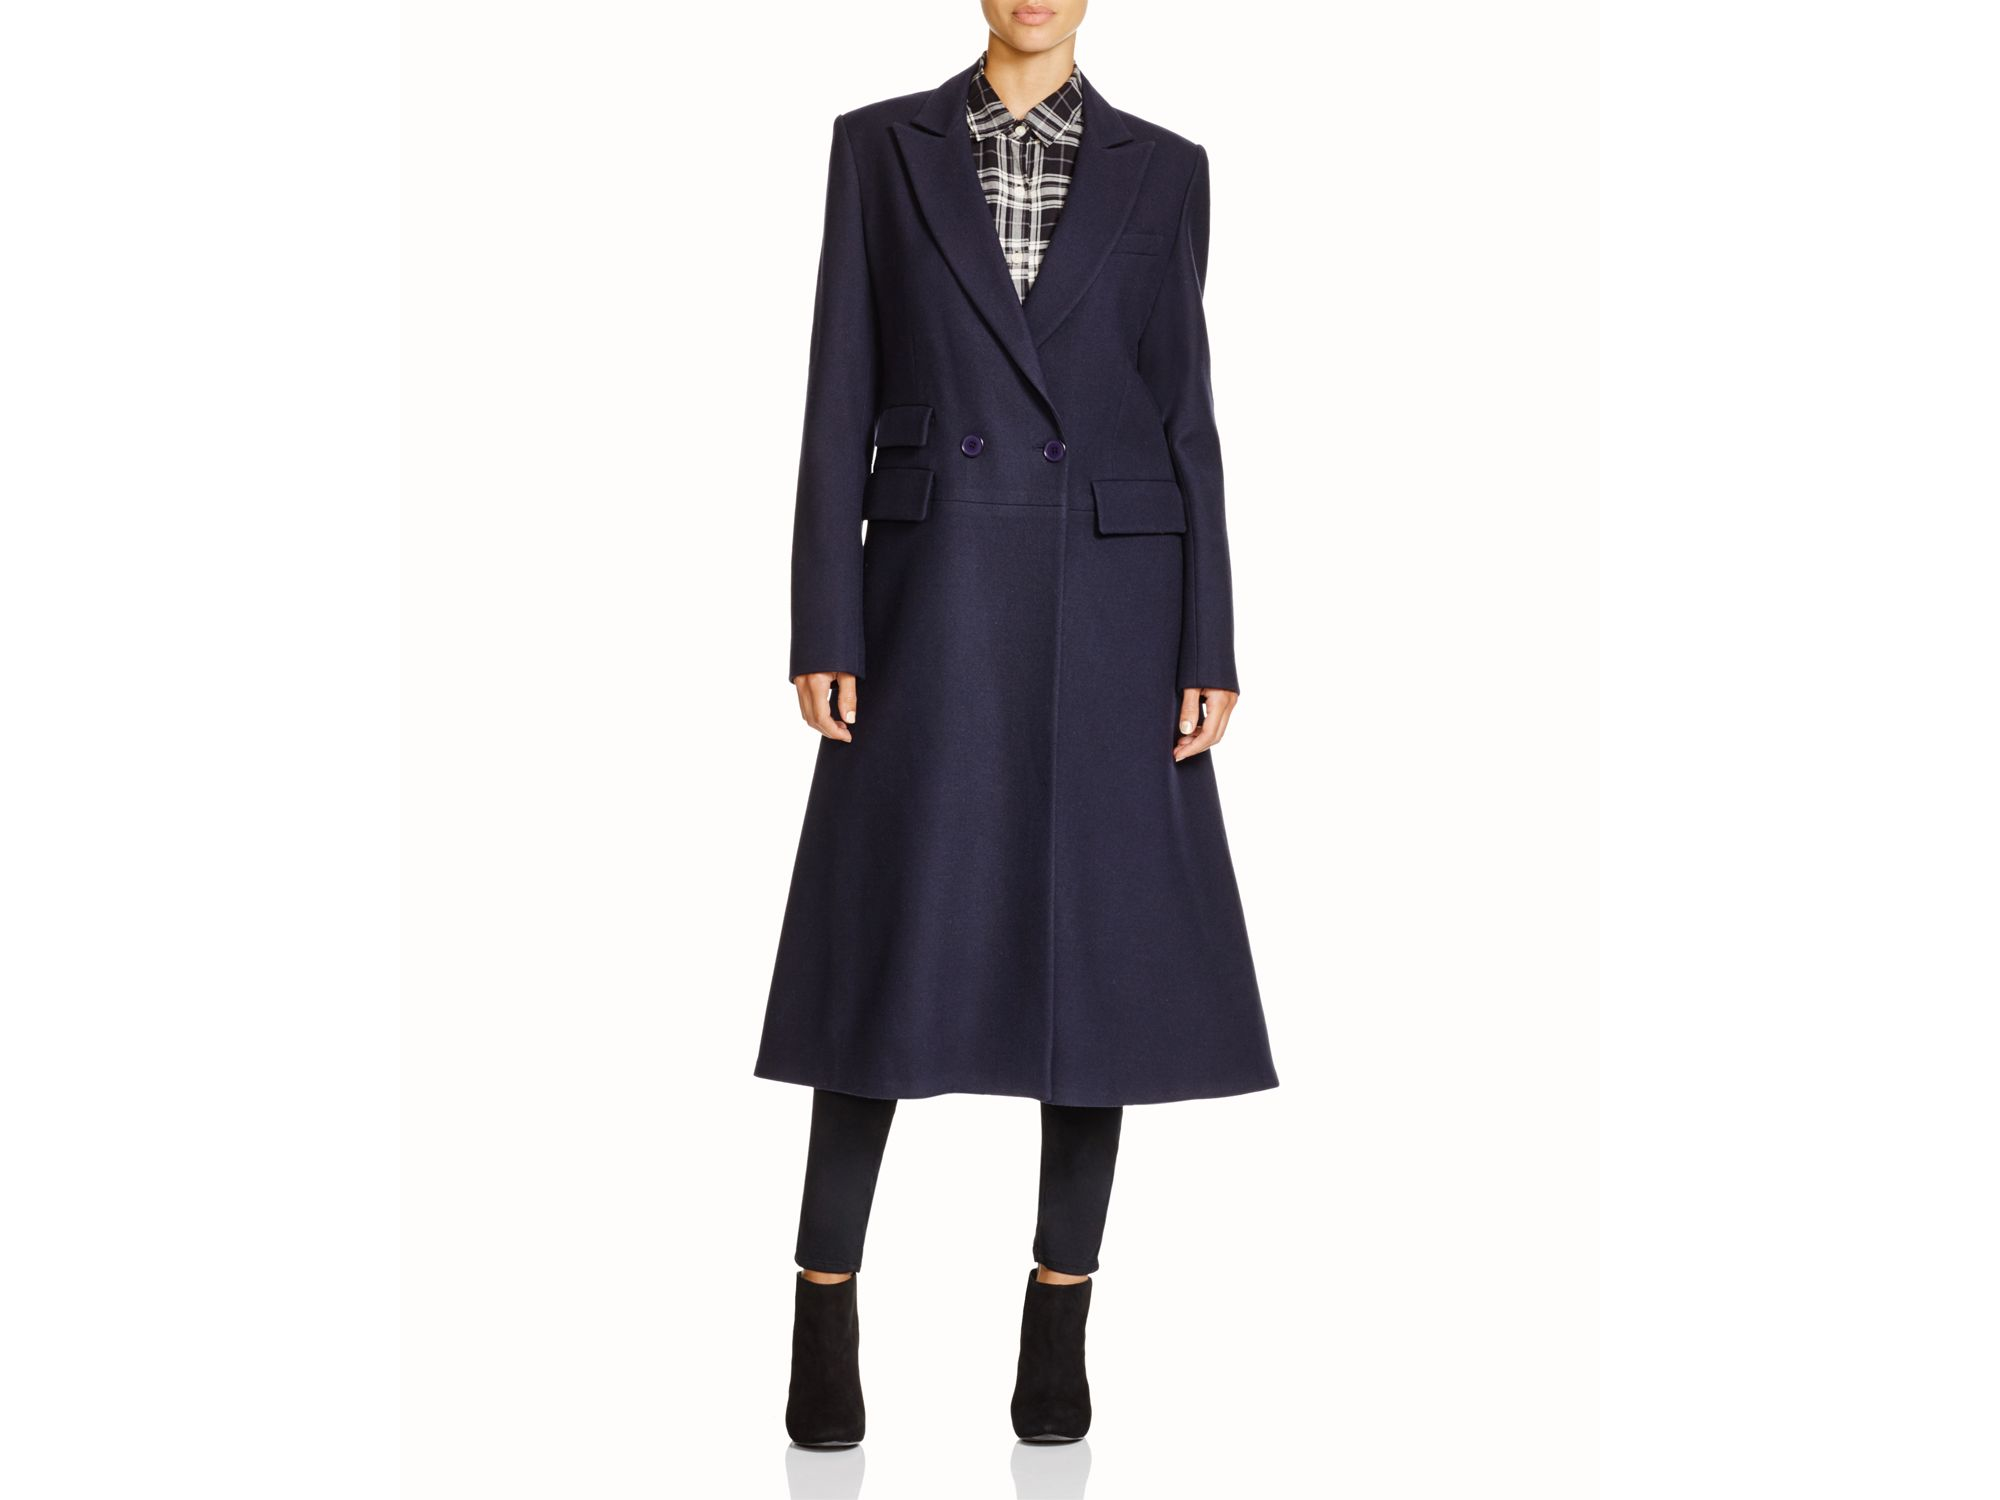 ab2df43c268 Lyst - DKNY Flared Wool Coat in Blue